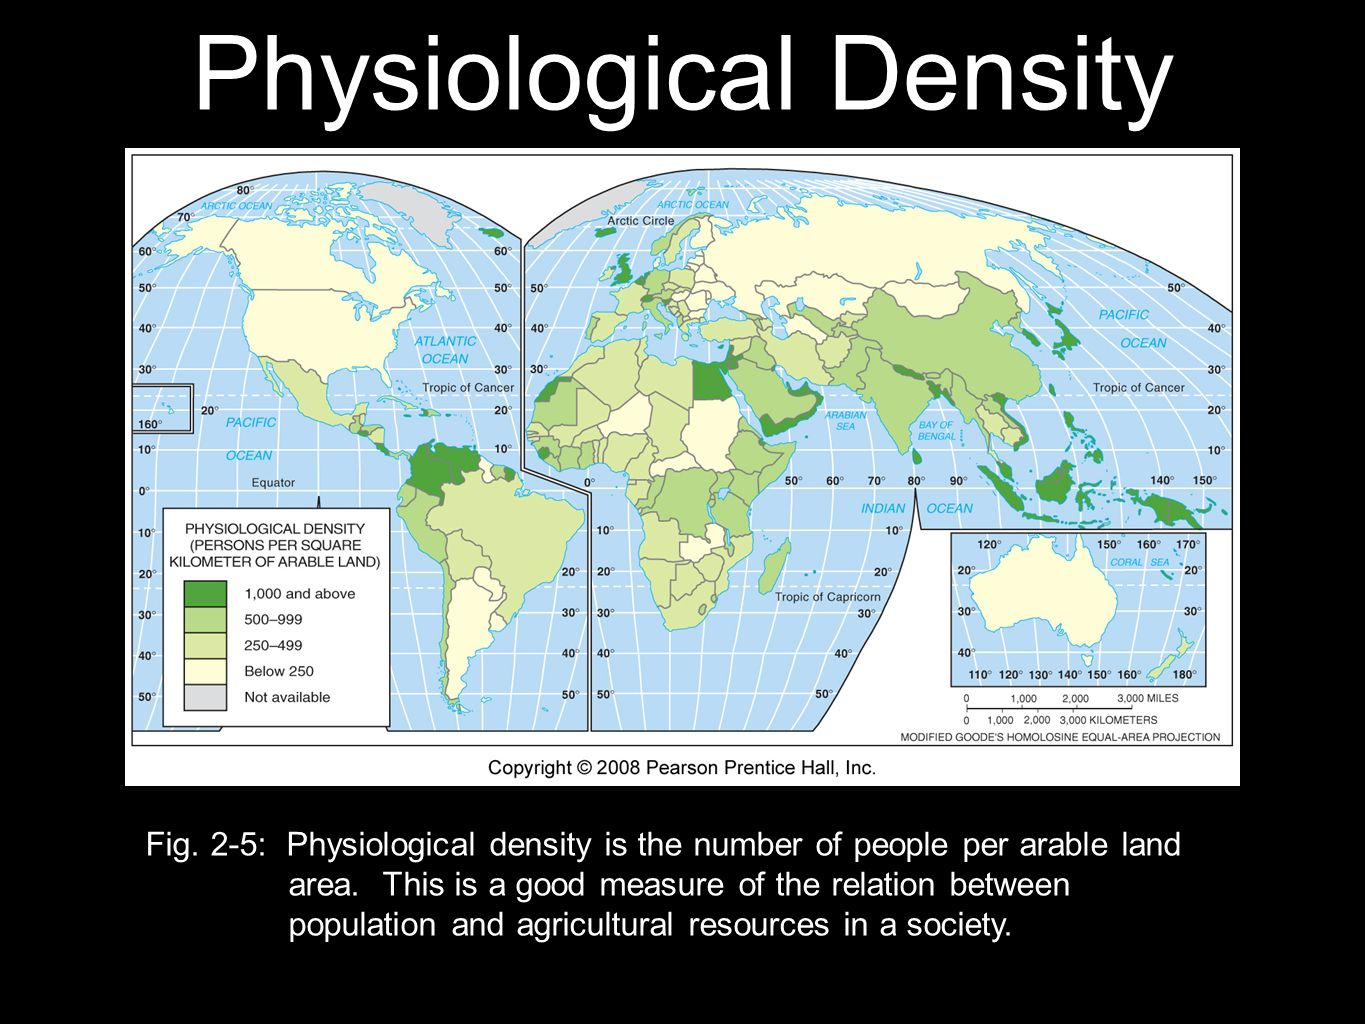 Physiological Density Fig. 2-5: Physiological density is the number of people per arable land area. This is a good measure of the relation between pop